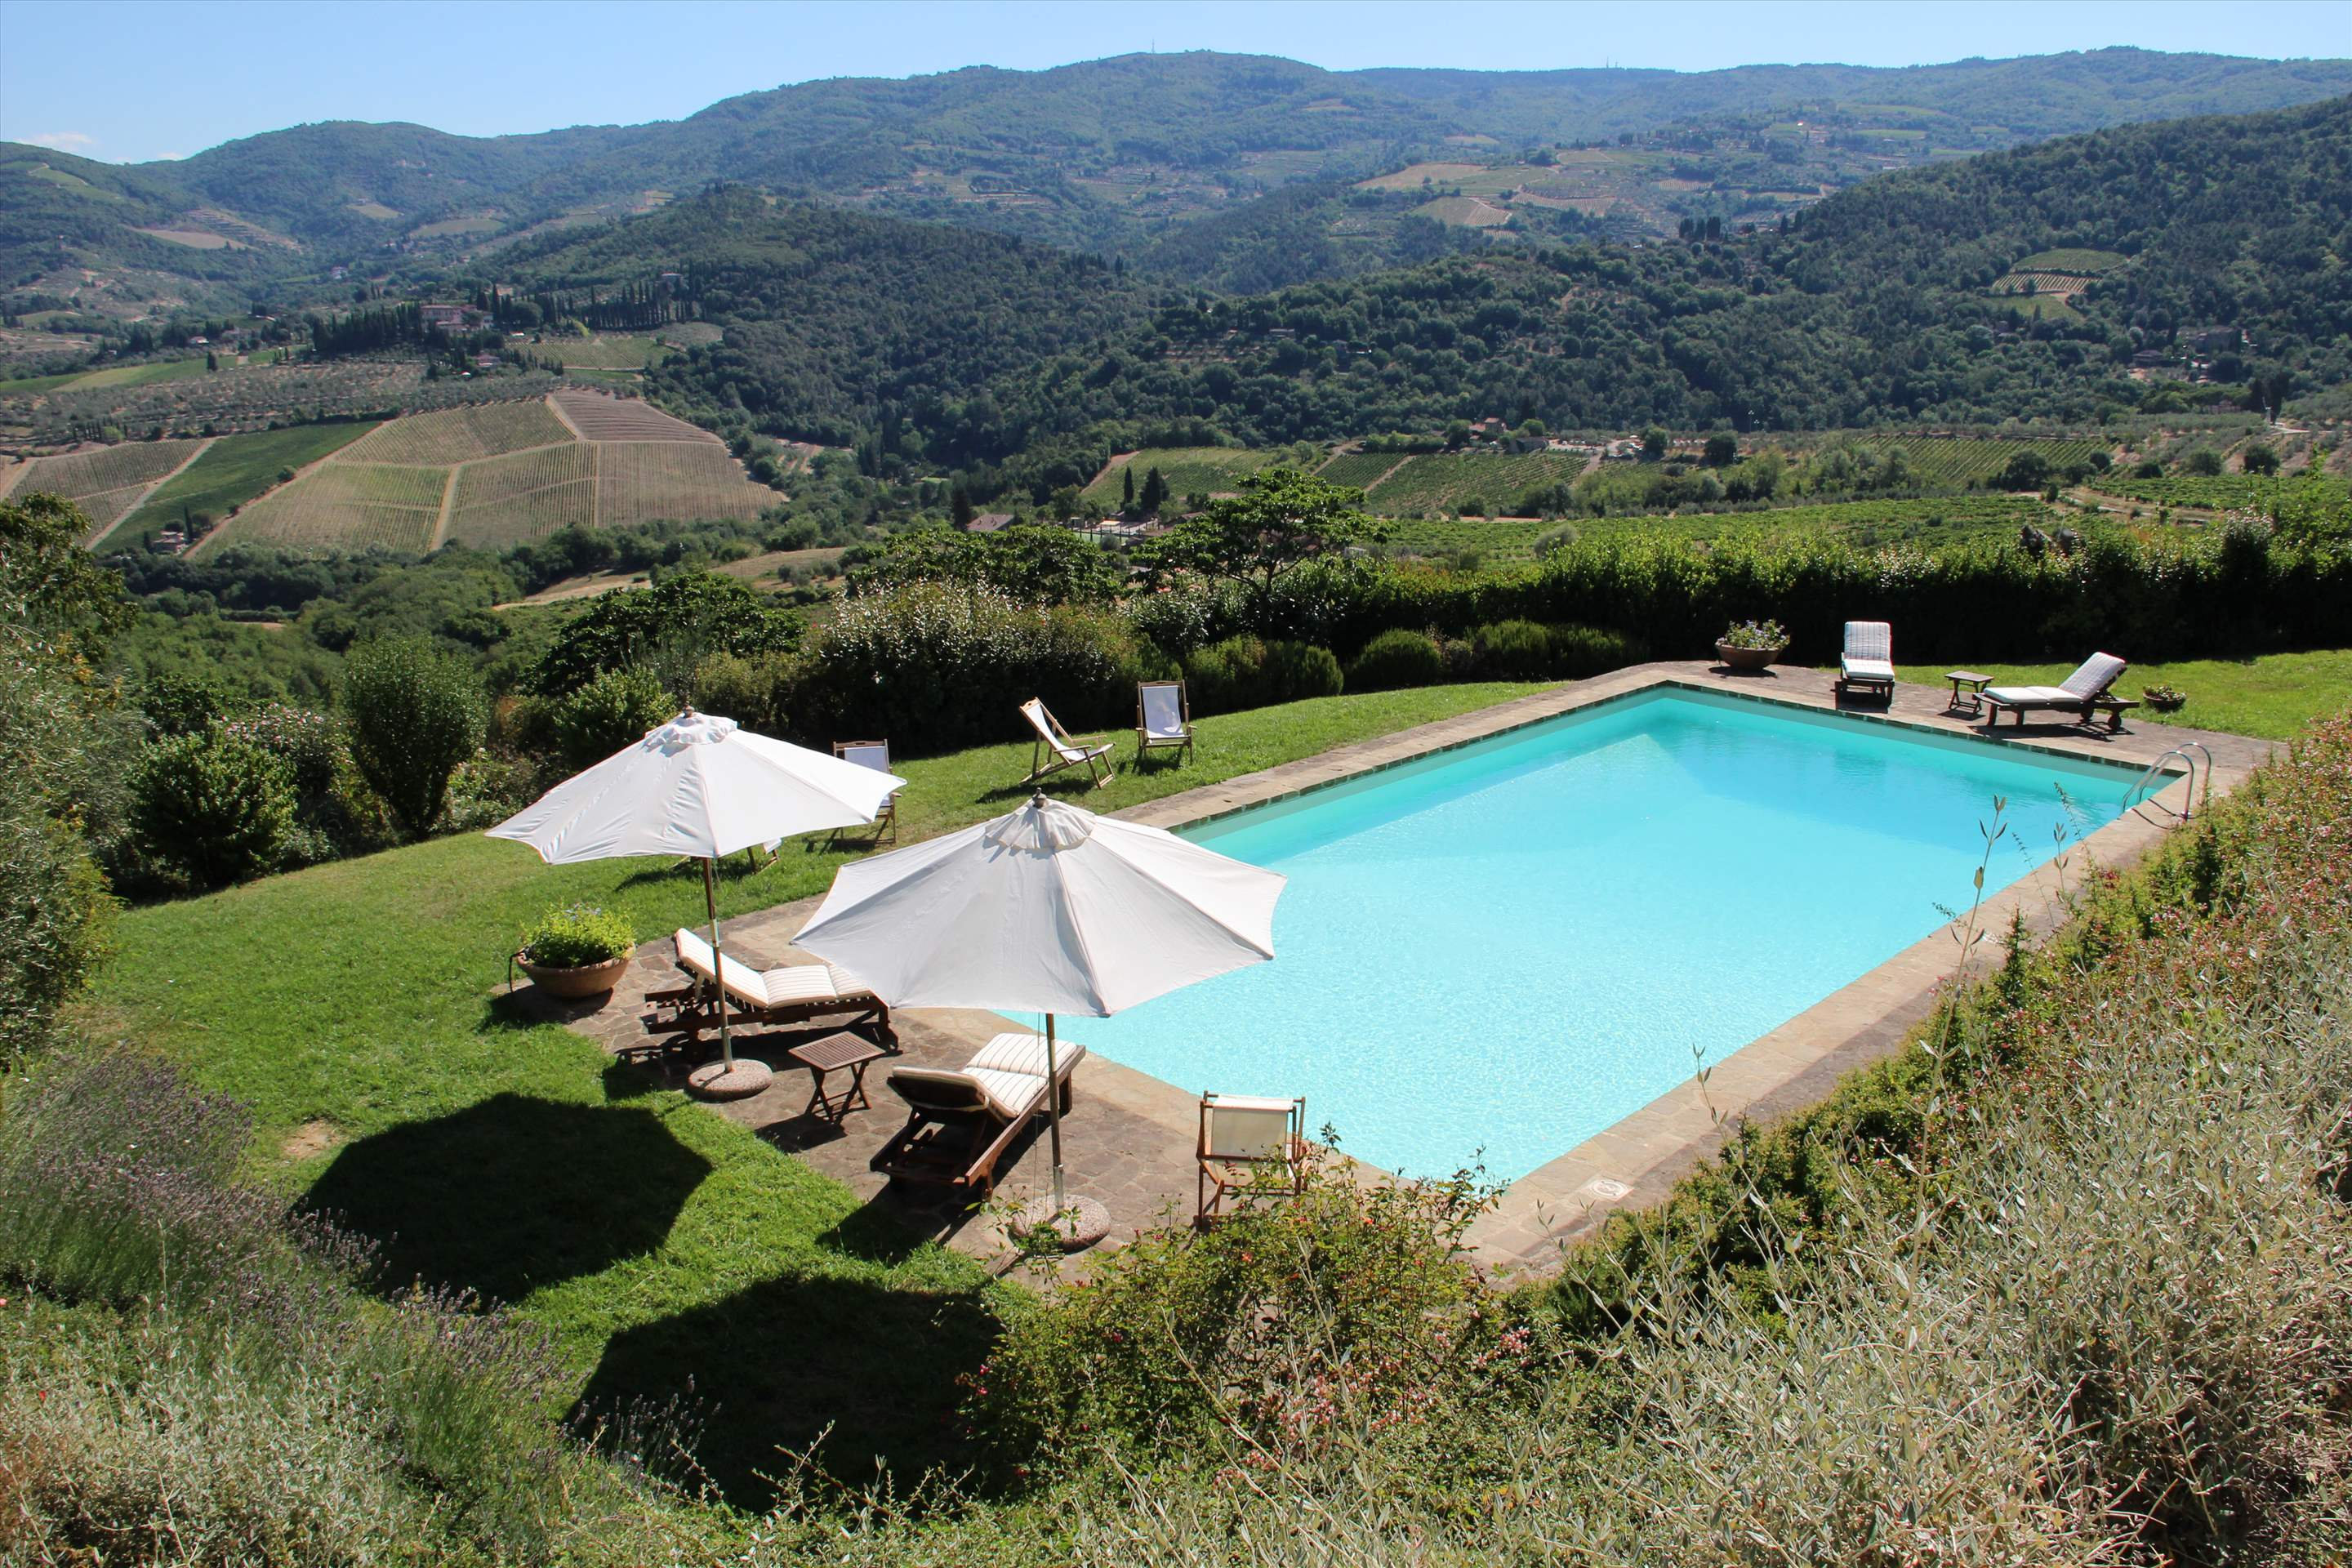 Casa Panoramica, 3 bedroom villa in Chianti & Countryside, Tuscany